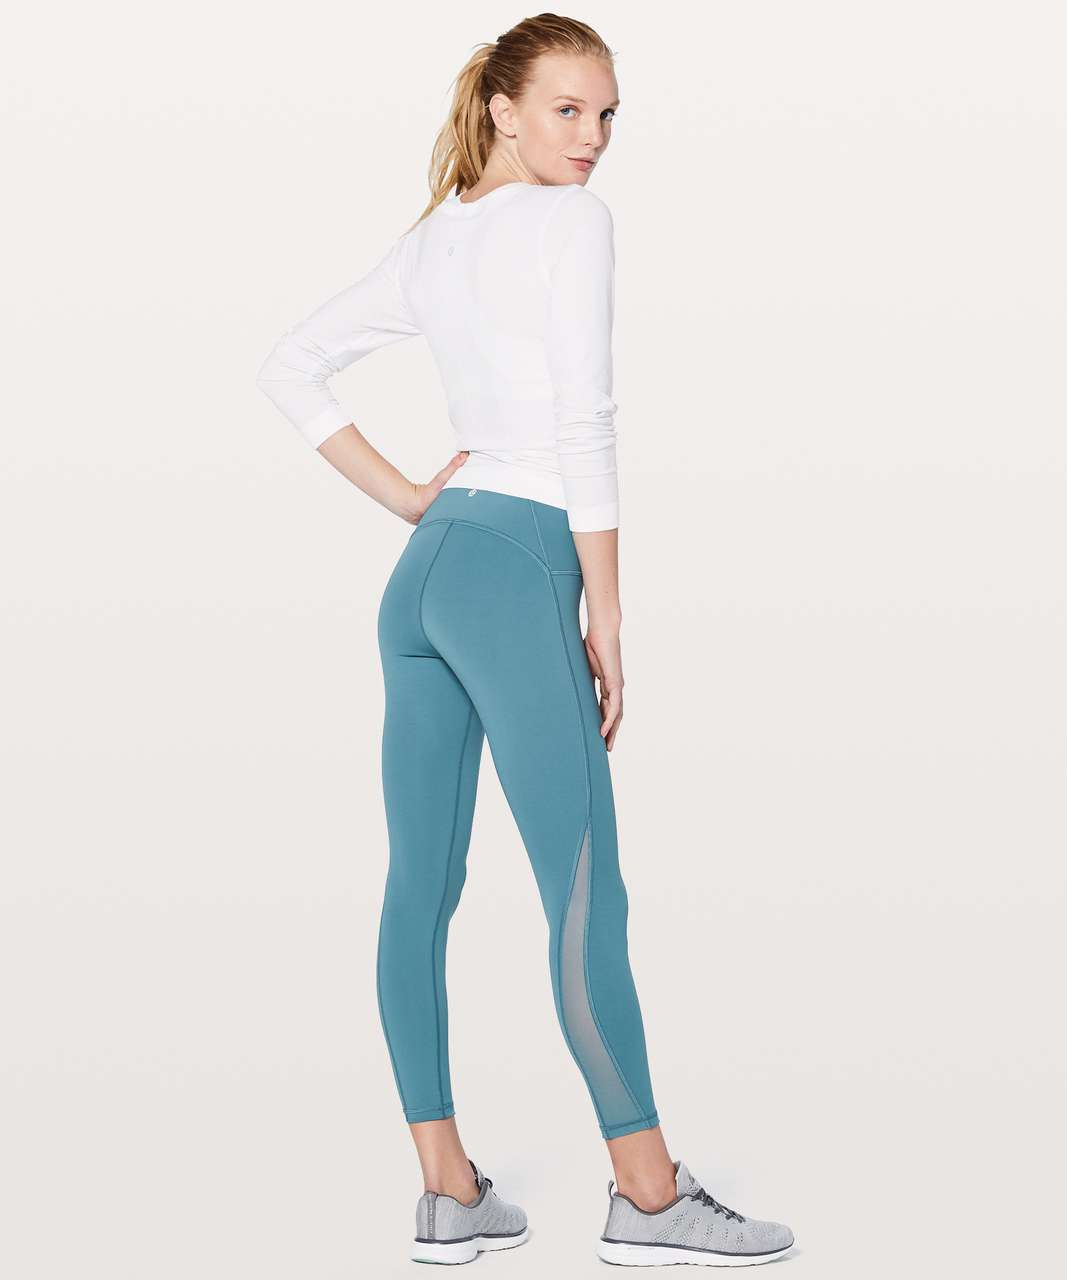 "Lululemon Train Times 7/8 Pant *25"" - Persian Blue"